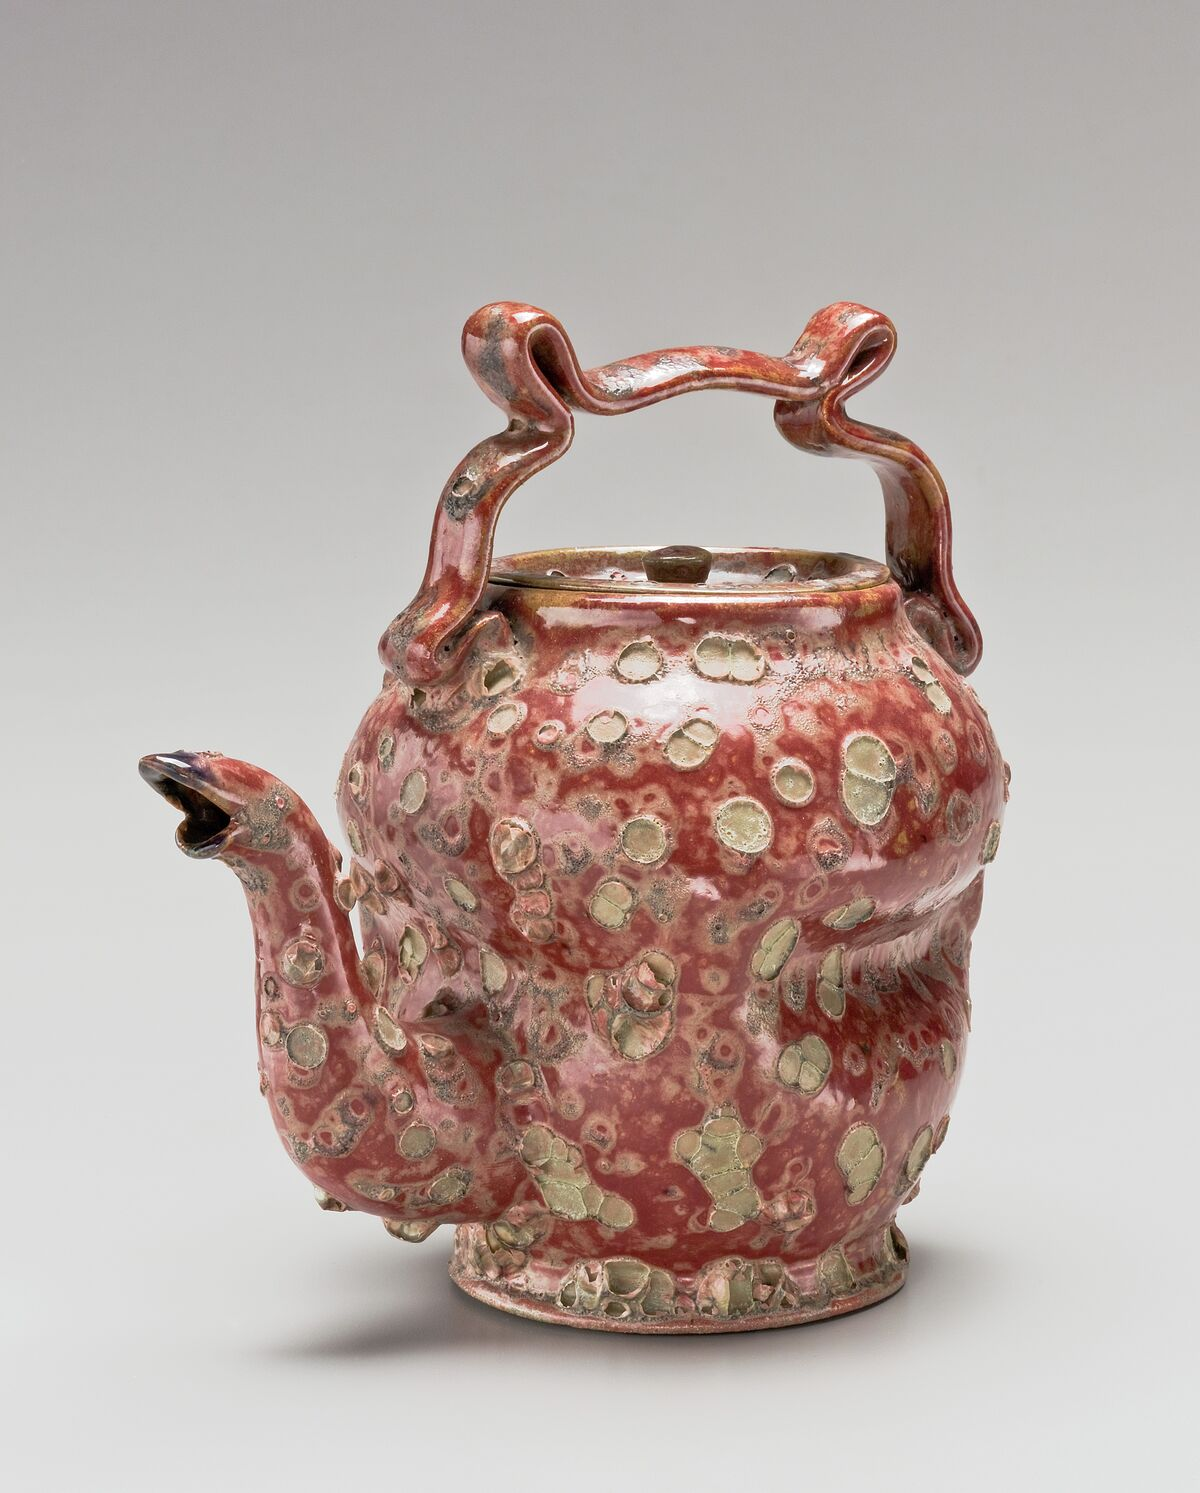 George E. Ohr, Teapot, 1897–1900. Courtesy of the Metropolitan Museum of Art.